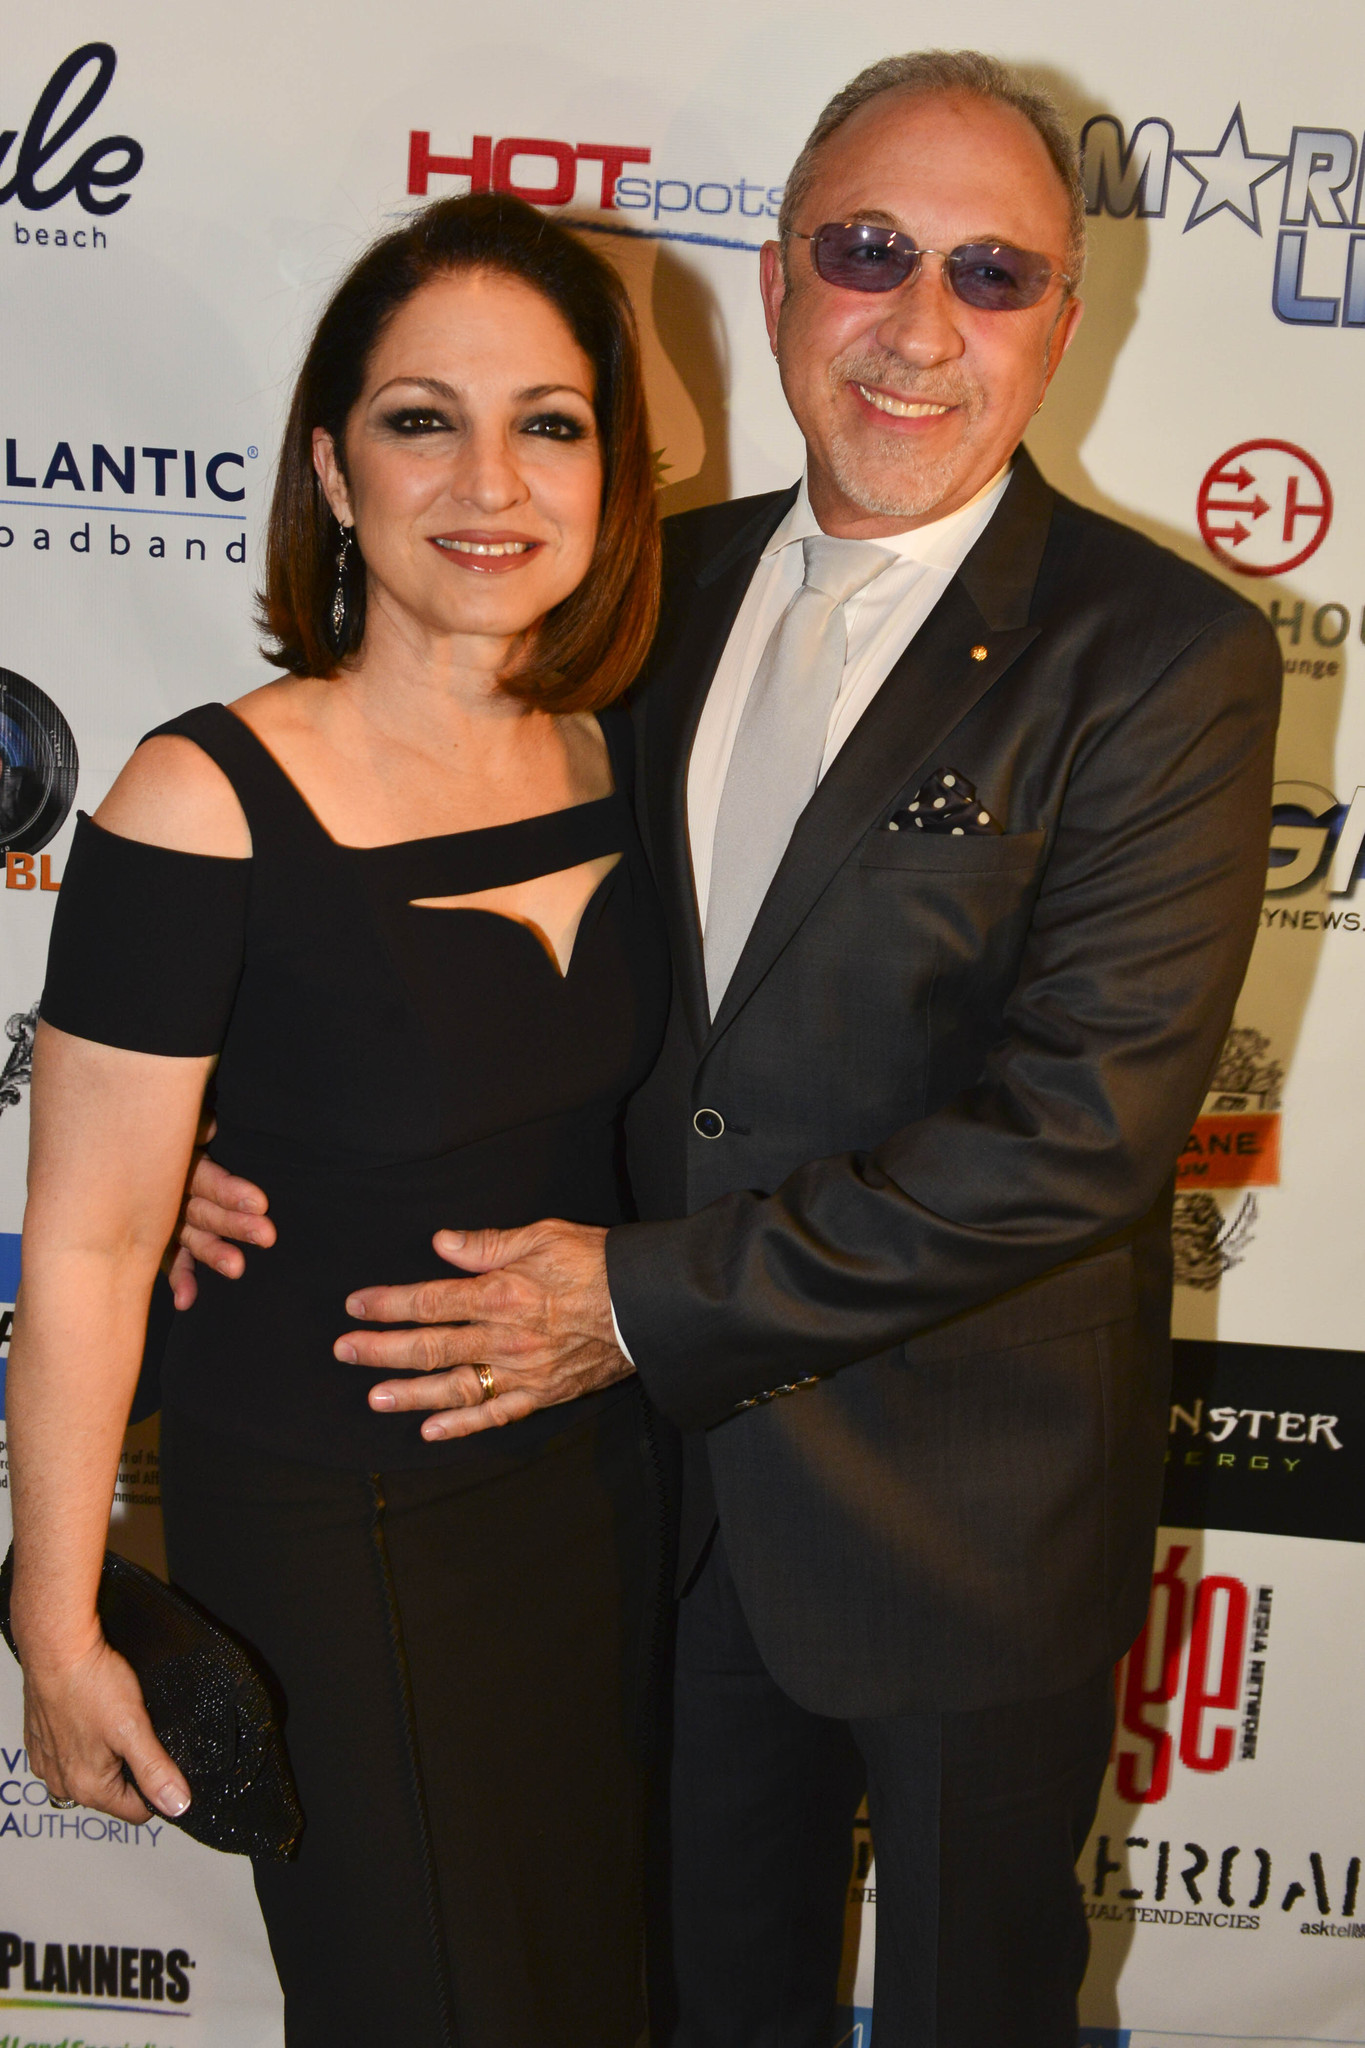 Celeb-spotting around South Florida - Gloria Estefan and Emilio Estefan